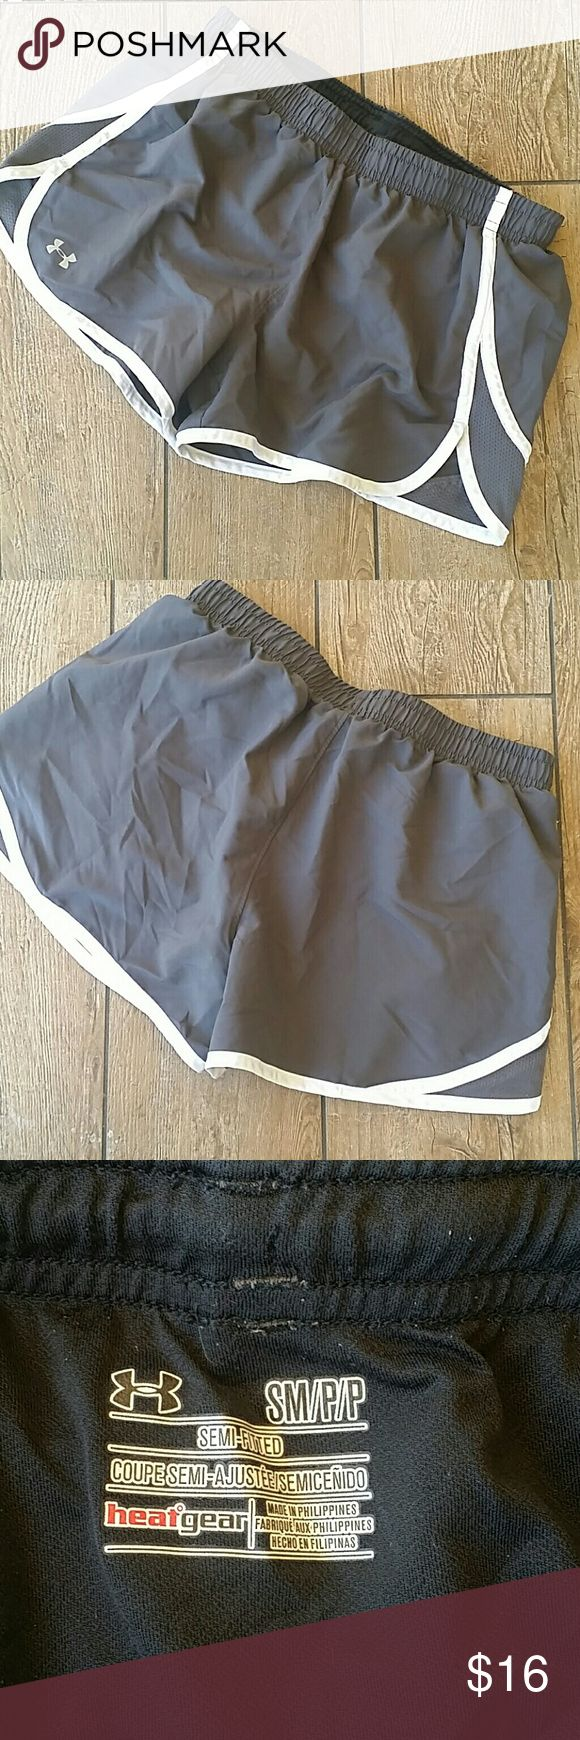 "🔮UNDER ARMOUR GRAY SHORTS🔮 Smoke gray and white shorts Elastic and drawstring waist Built in black brief 2.5"" inseam No rips, stains or pilling Smoke free home Under Armour Shorts"